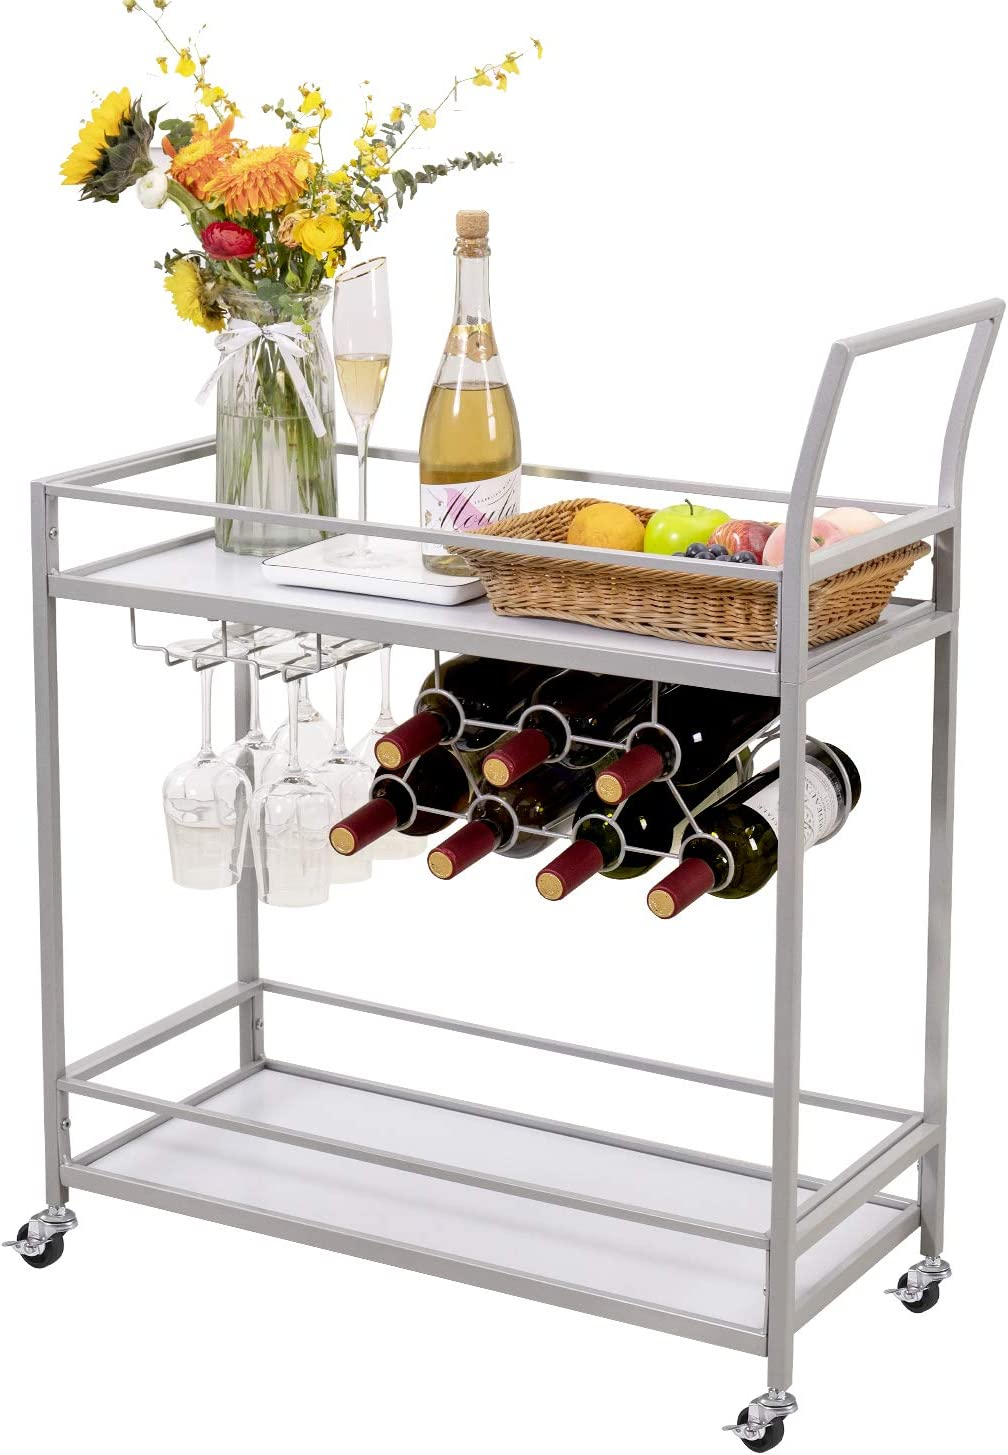 JBBCN Bar Serving Cart, Home Party Bar Cart on Wheels Wood Metal Wine Rack Trolley,Suitable for Kitchen Living Room Outdoor,Silver Finish